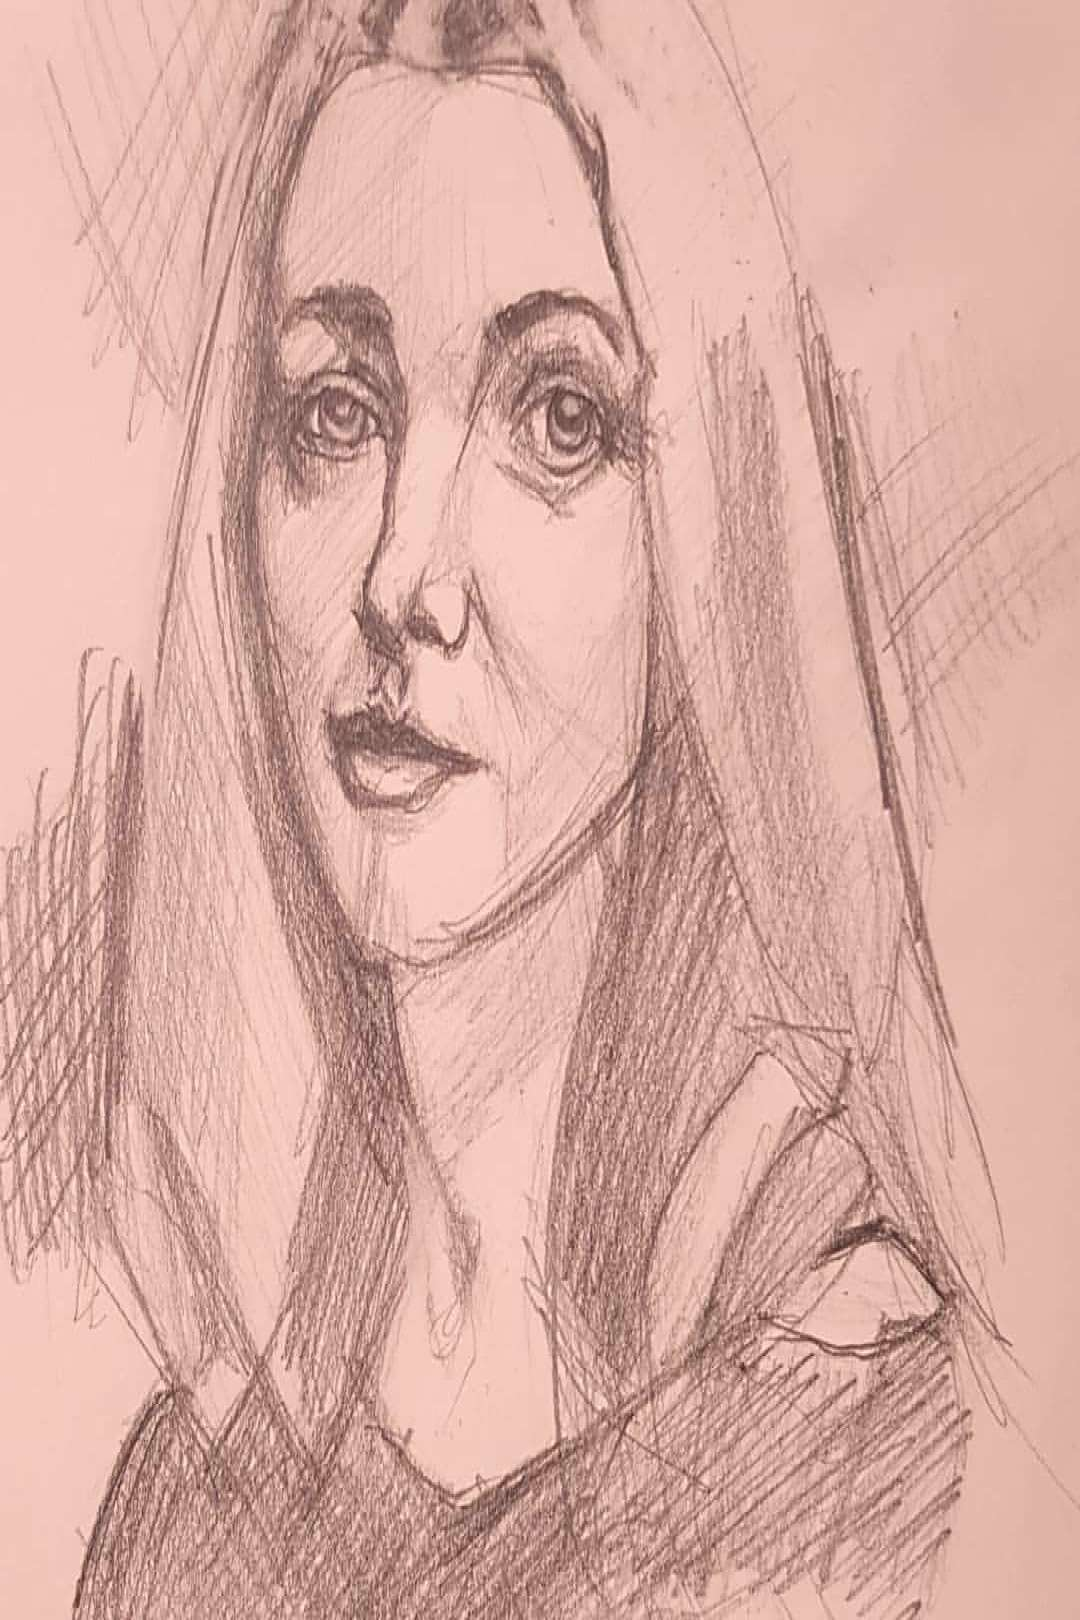 More of my train sketches from the recent past previously posted